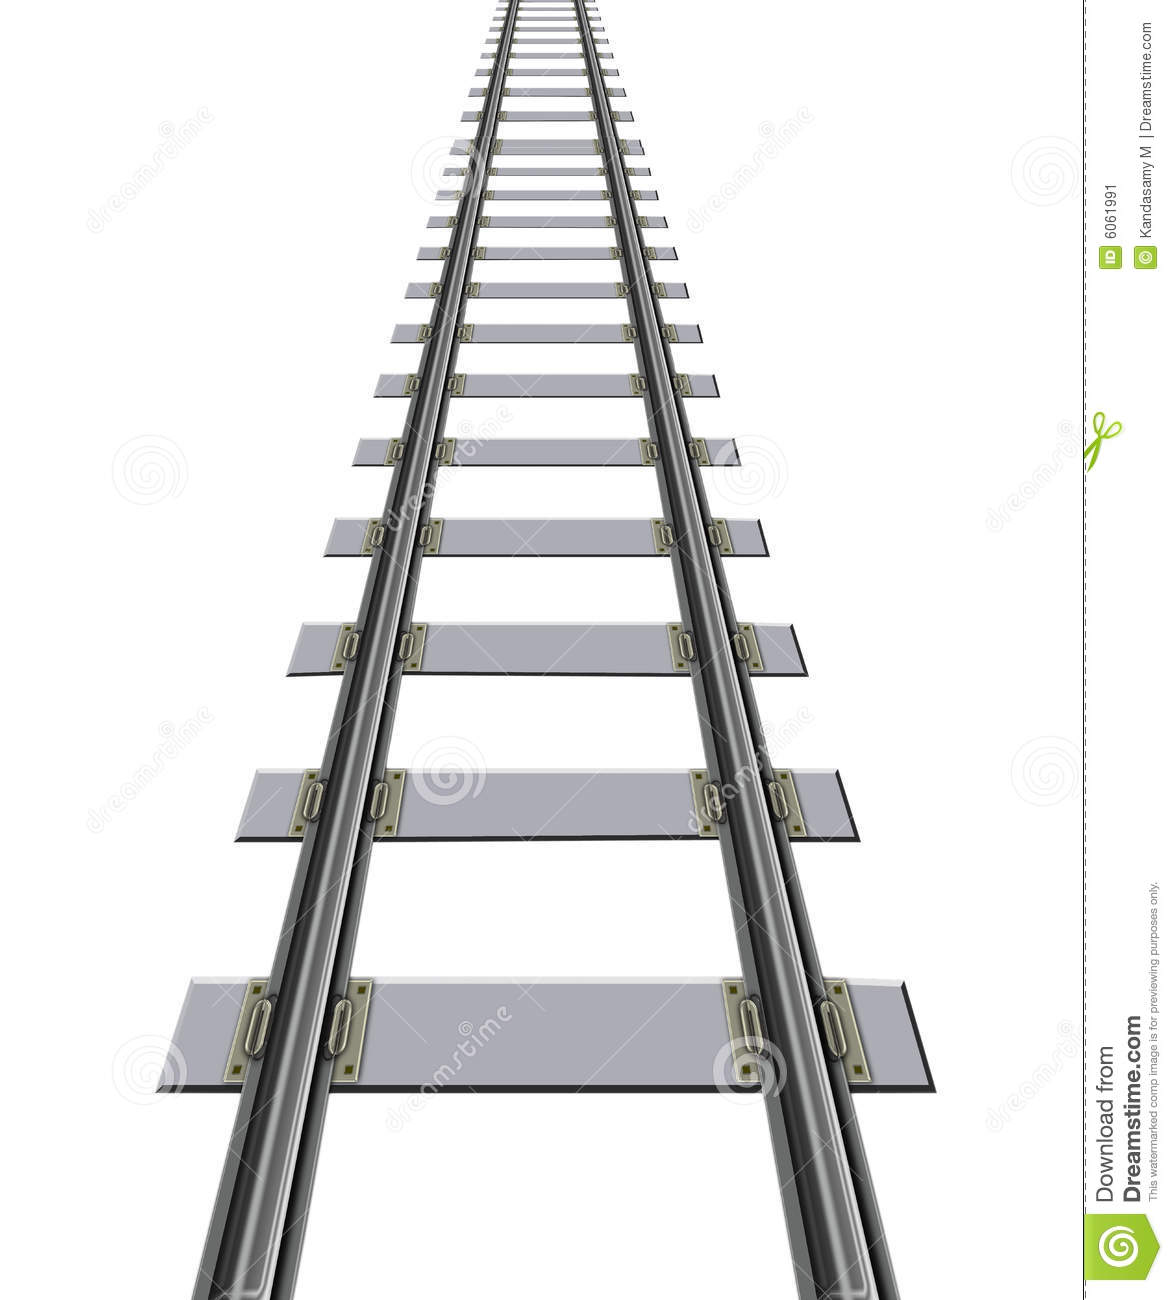 Clipart Train Tracks Free Download Wallpaper Hd #1837 - Train Track PNG HD